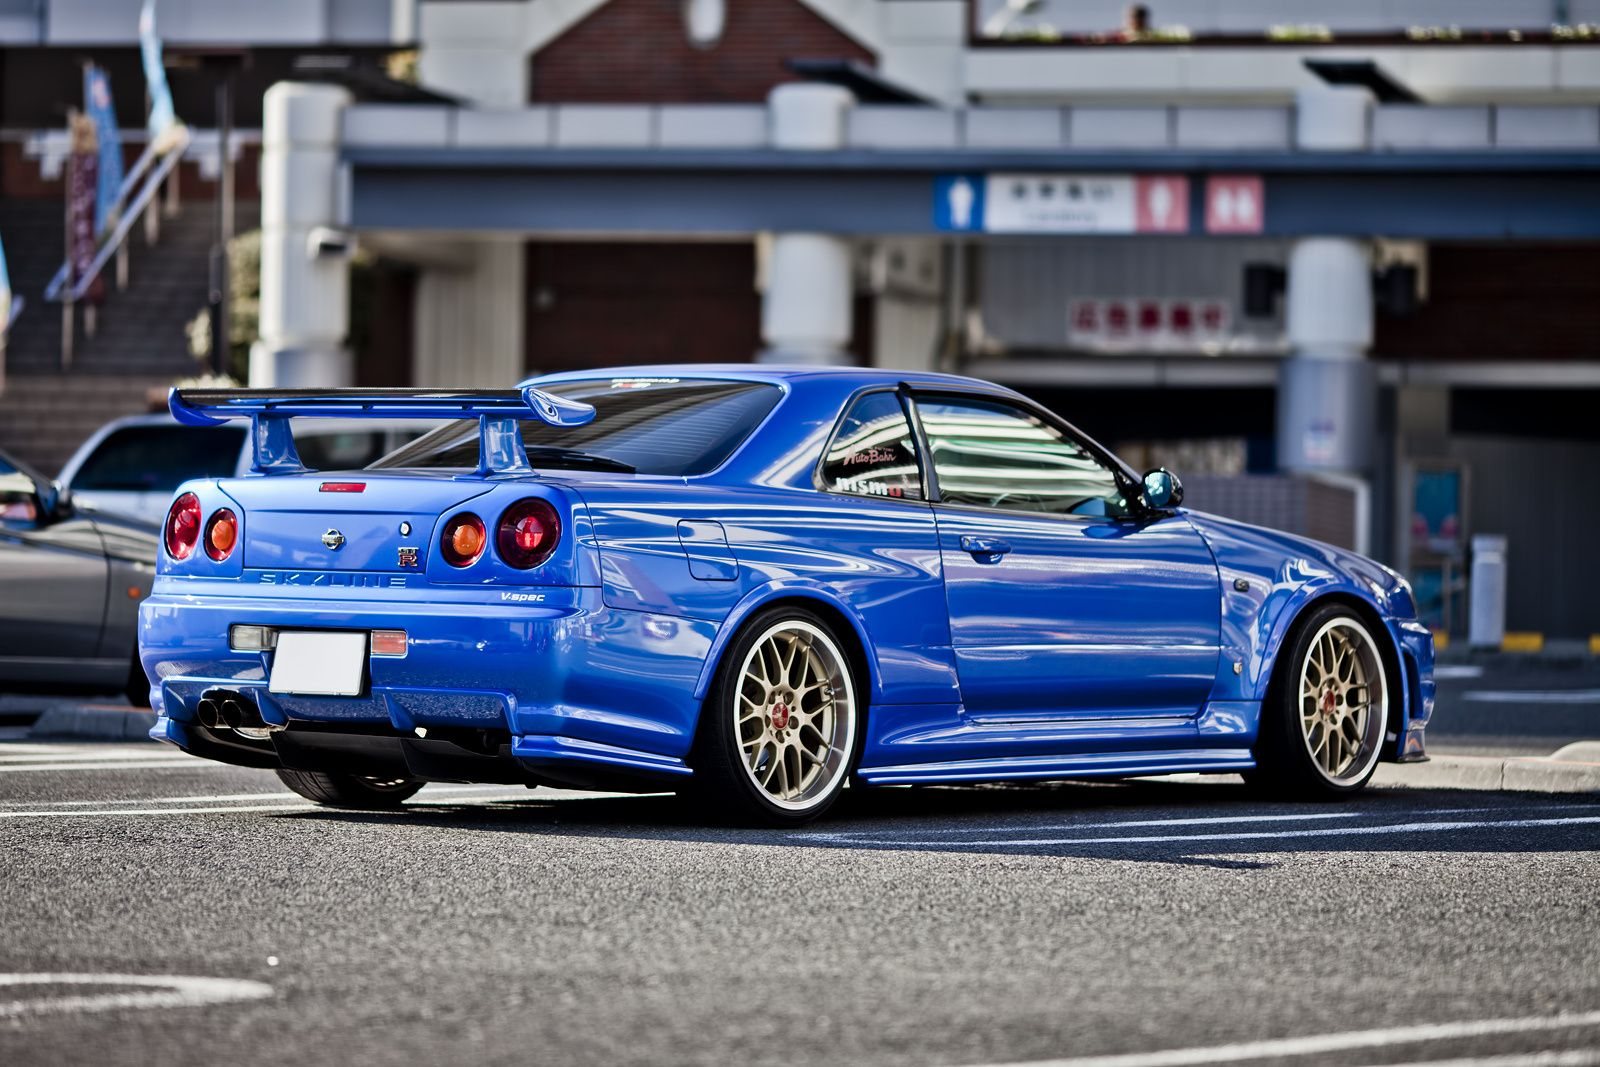 bayside blue r34 skyline gt r at daikoku futo godzilla pinterest r34 skyline jdm and nissan. Black Bedroom Furniture Sets. Home Design Ideas